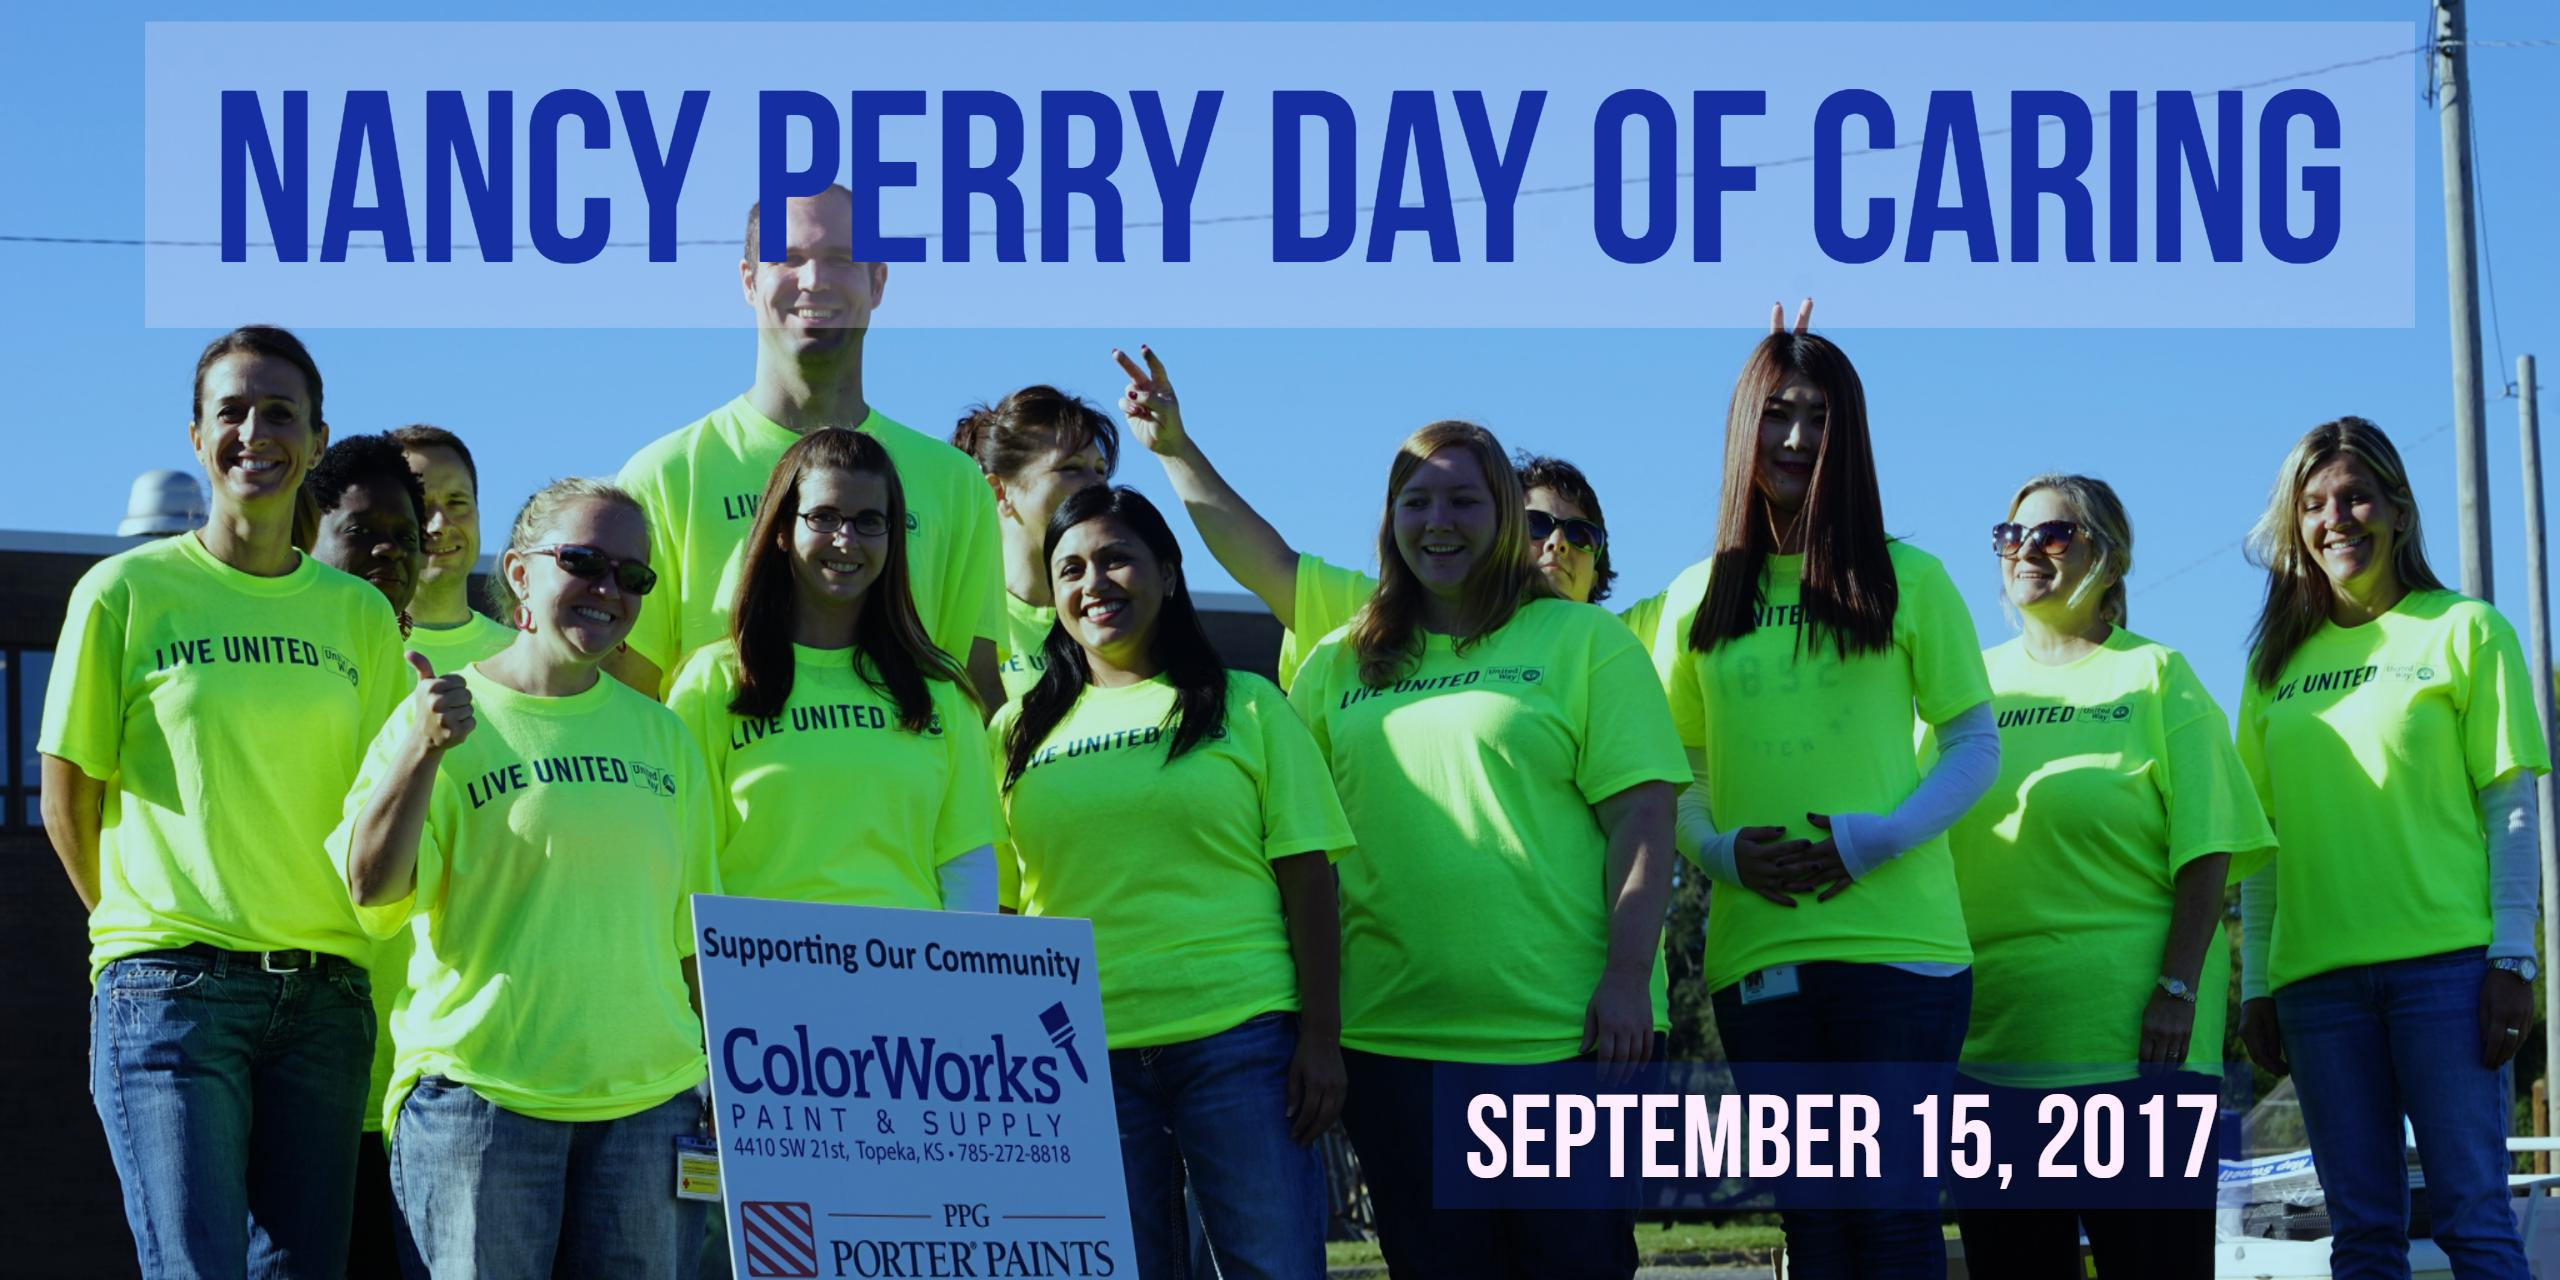 Nancy Perry Day of Caring, September 15, 2017